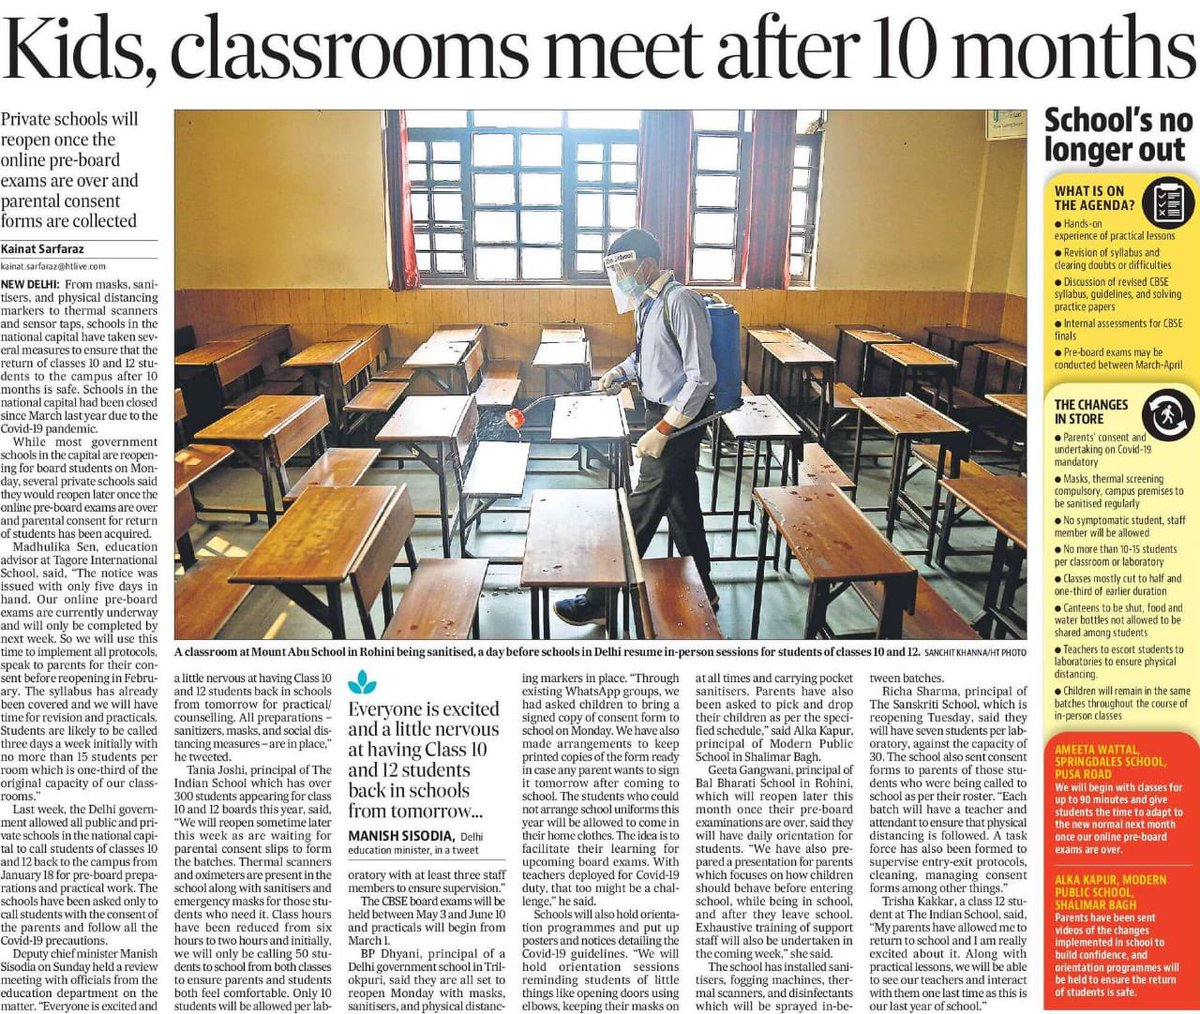 Best wishes to the students of class 10&12th who are going to visit their school today after 10 months...   (though it's only for limited purpose and with covid protocols..) But still...   I am glad that schools are opening in Delhi today.